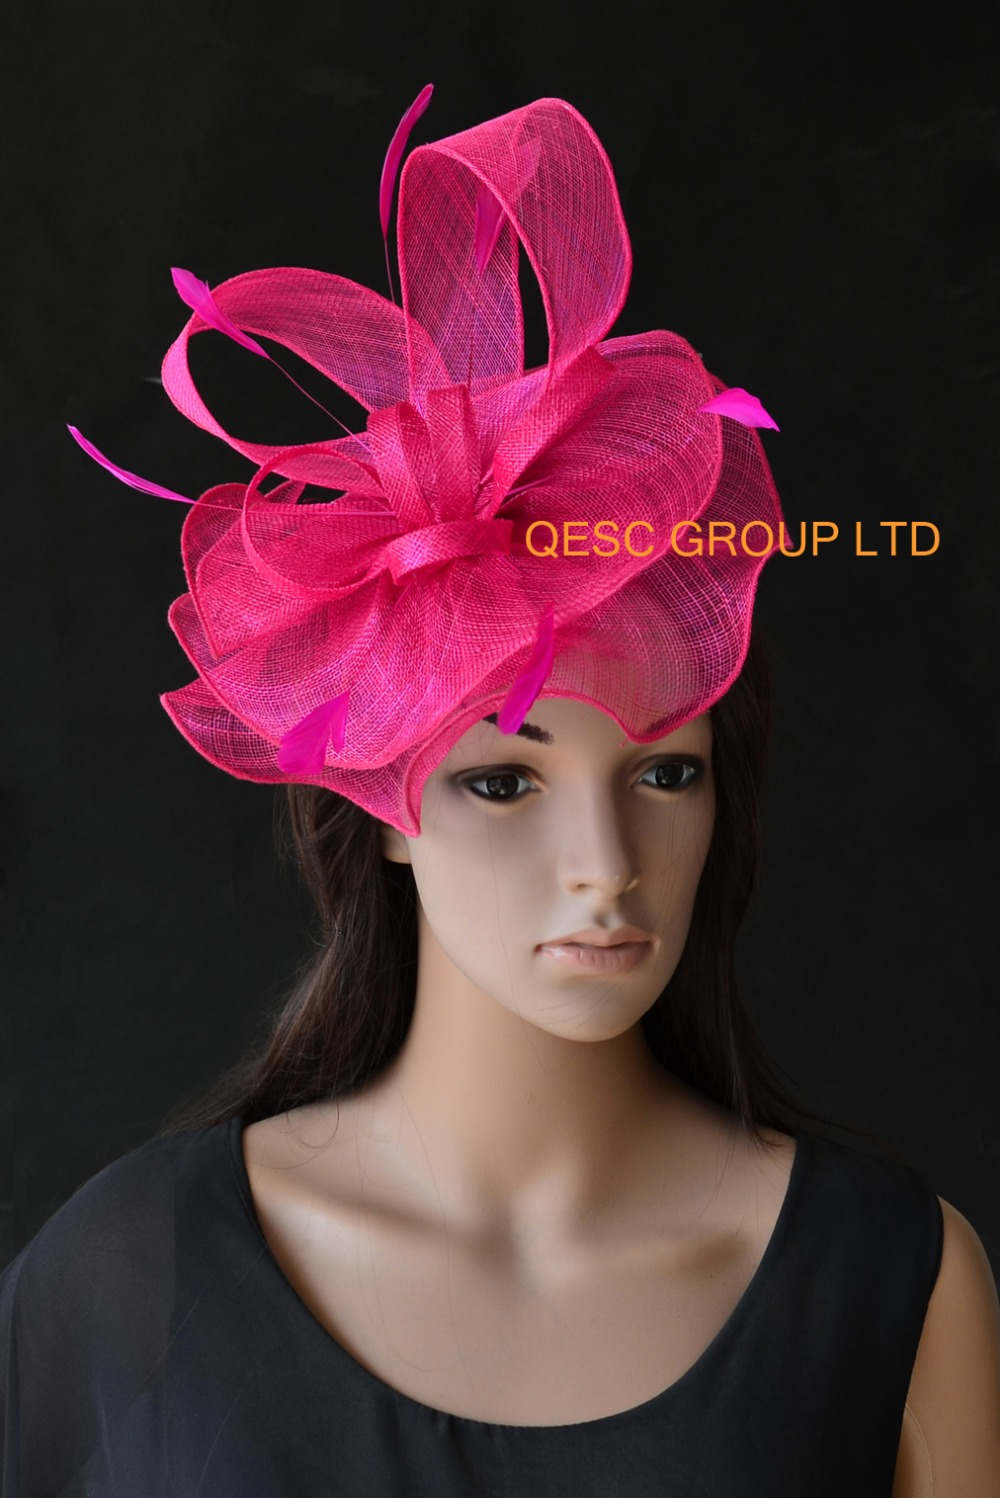 Hot pink sinamay fascinator hat kentucky derby hat for Tea Wedding,Races.(China (Mainland))